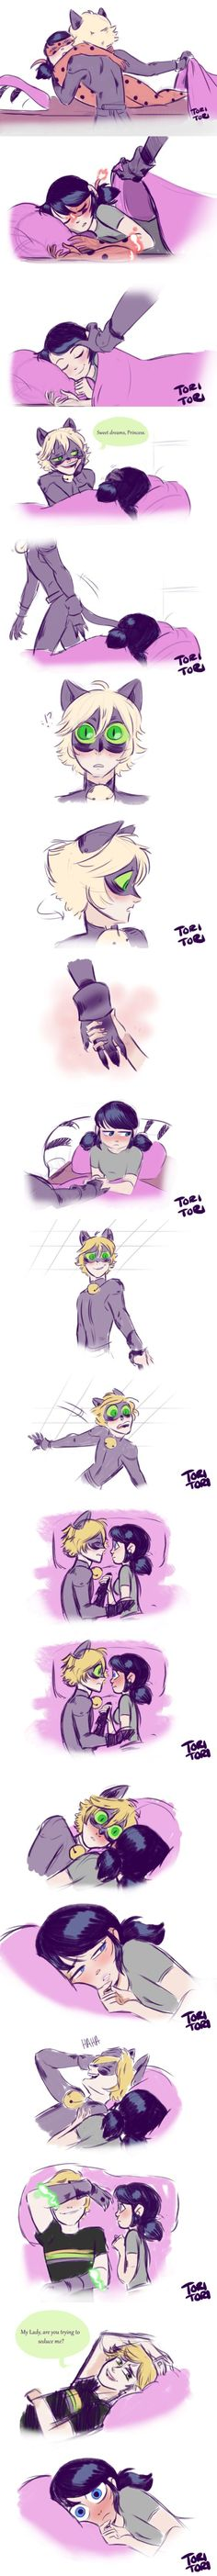 Adrien and Marinette (Miraculous: Tales of Ladybug & Chat Noir) Ladybug E Catnoir, Ladybug Und Cat Noir, Ladybug Comics, Ladybug And Cat Noir Reveal, Lady Bug, Anime Couples, Cute Couples, Cat Noir Cosplay, Les Miraculous